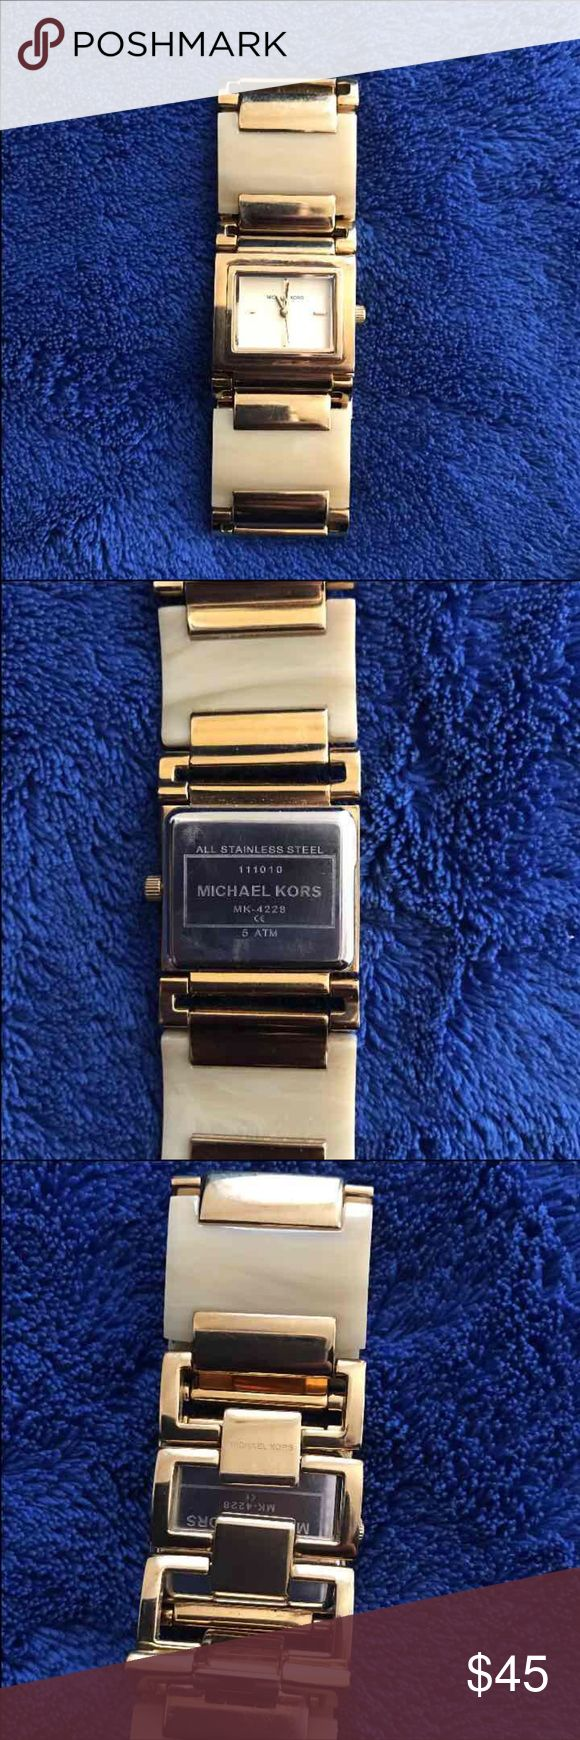 Michael Kors Gold Tone Tortoise Shell Watch Needs replacement battery, works fine. Some light scratches and discolorations. Beautiful watch. Michael Kors Accessories Watches